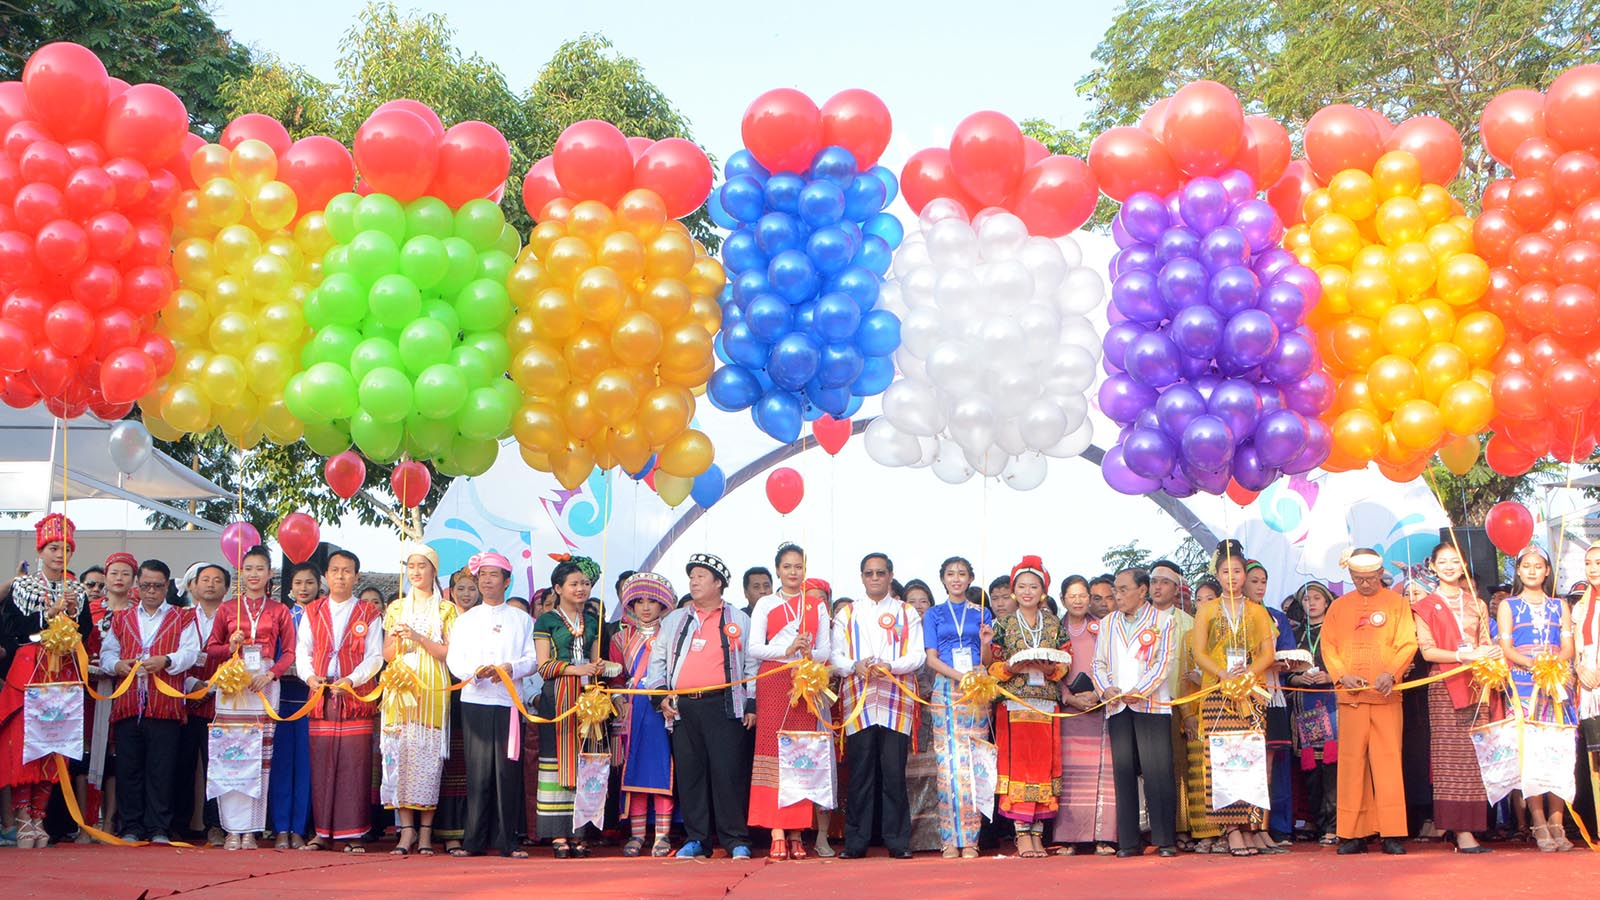 Vice President U Henry Van Thio, Union Ministers,  Ministers and officials open the Ethnics Cultural Festival at the Kyaikasan Grounds in Yangon yesterday. Photo: MNA